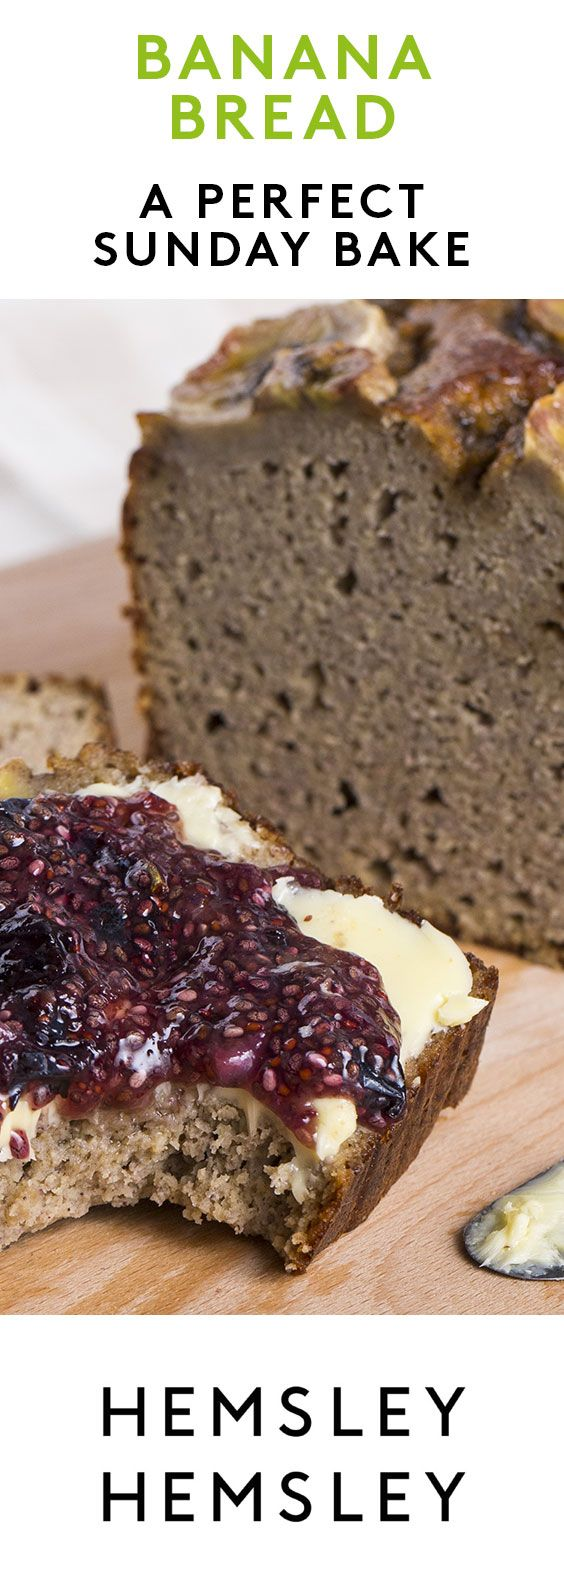 Everyone loves banana bread, it makes a sweet and satisfying breakfast or snack. Slather with butter and a dollop of homemade chia jam for a real tea-time treat. As seen in our Channel 4 series Eating (Vegan Gluten Free Banana)